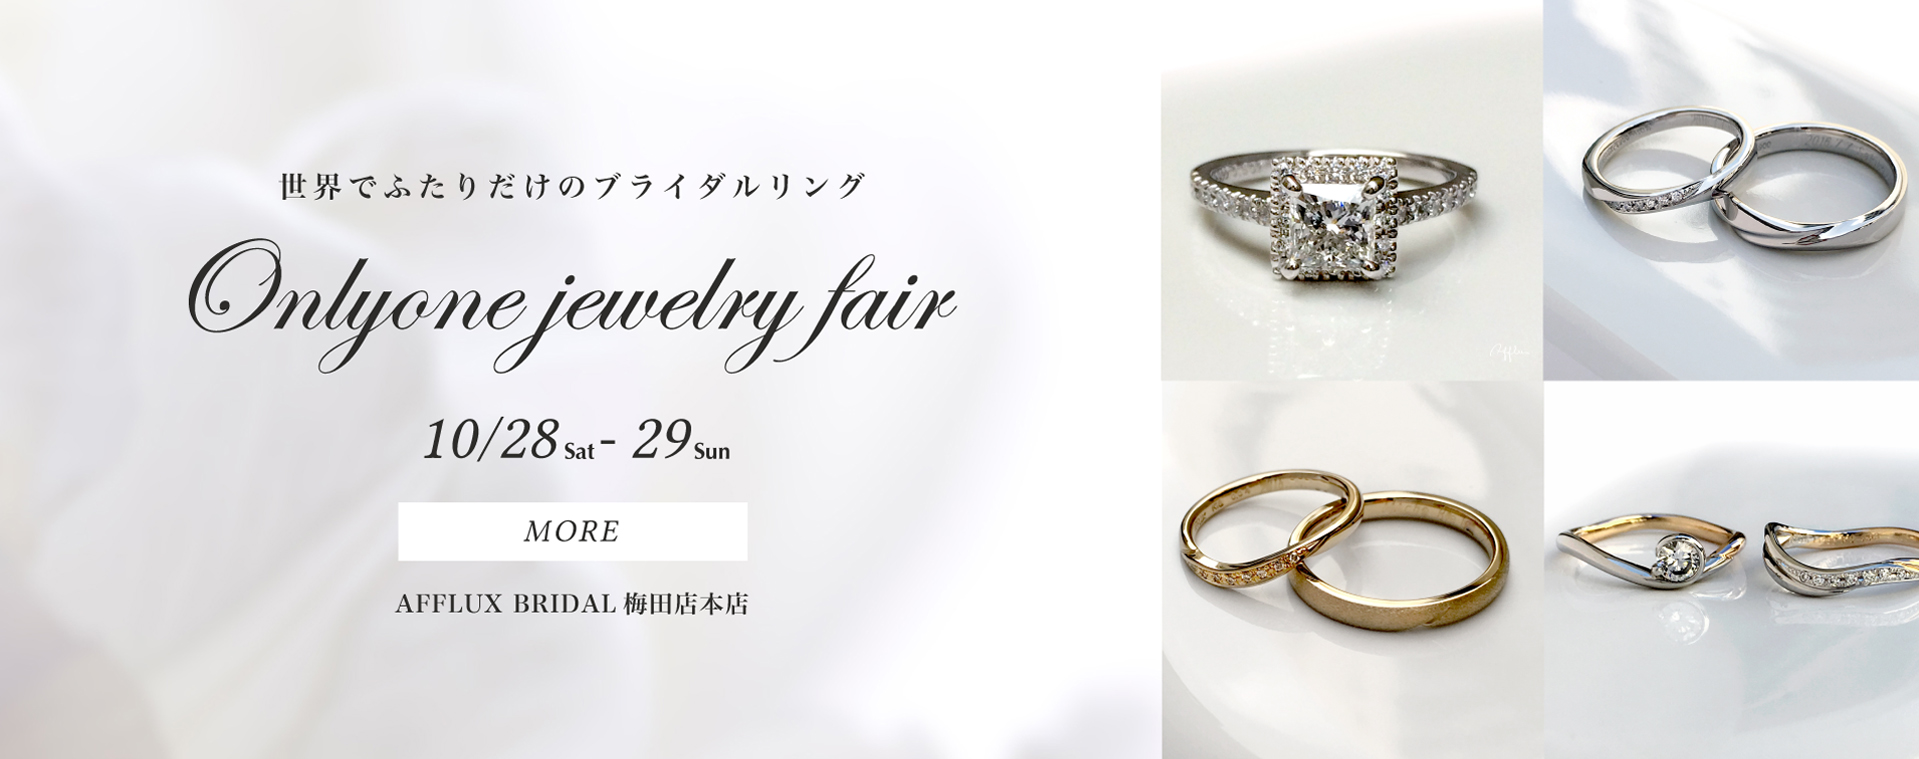 Onlyone jewelry fair 10/28.sat-10/29.sun